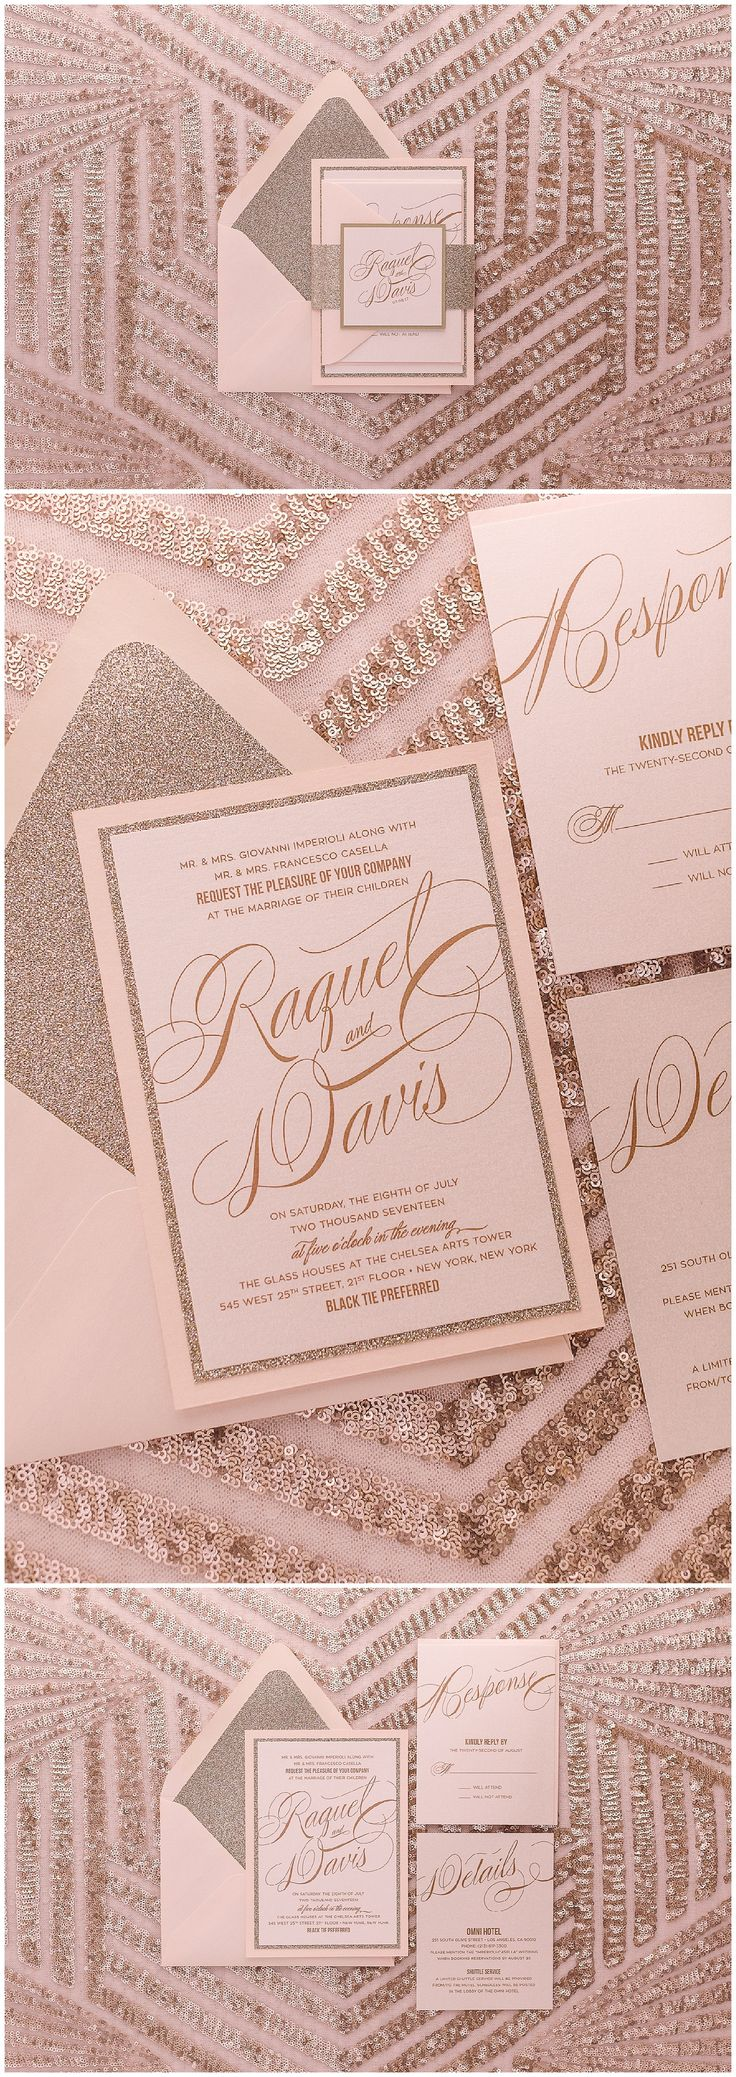 24 Best Timeless Textures Wedding Themes Images On Pinterest